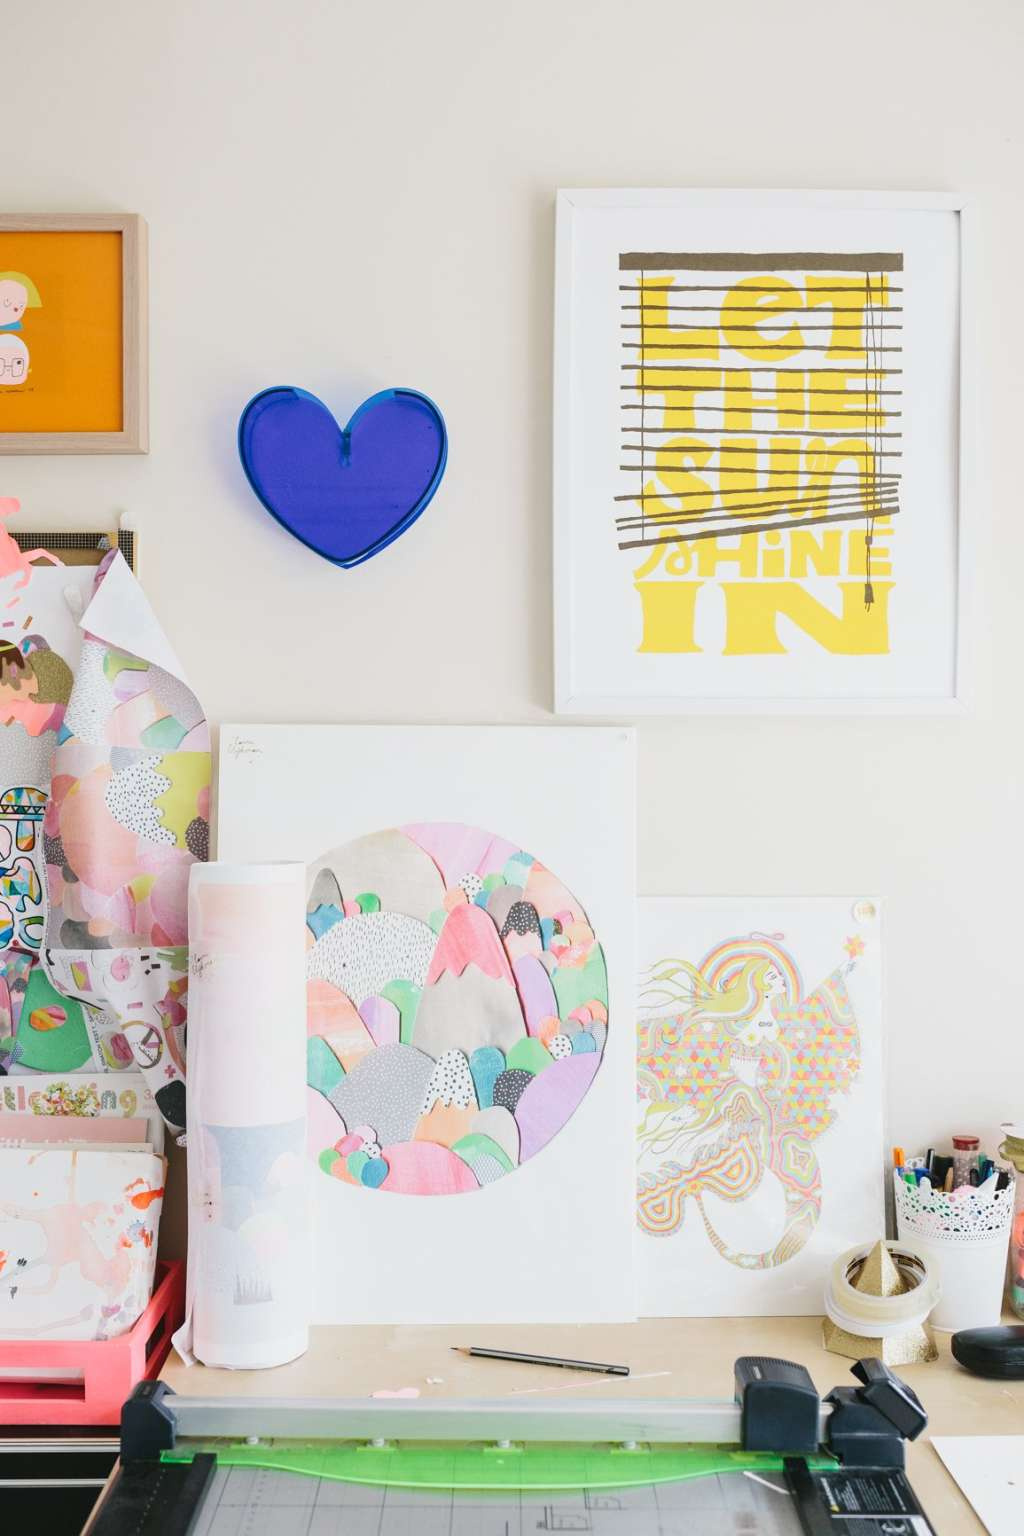 6 Ways to Design a Home That Constantly Boosts Your Creativity